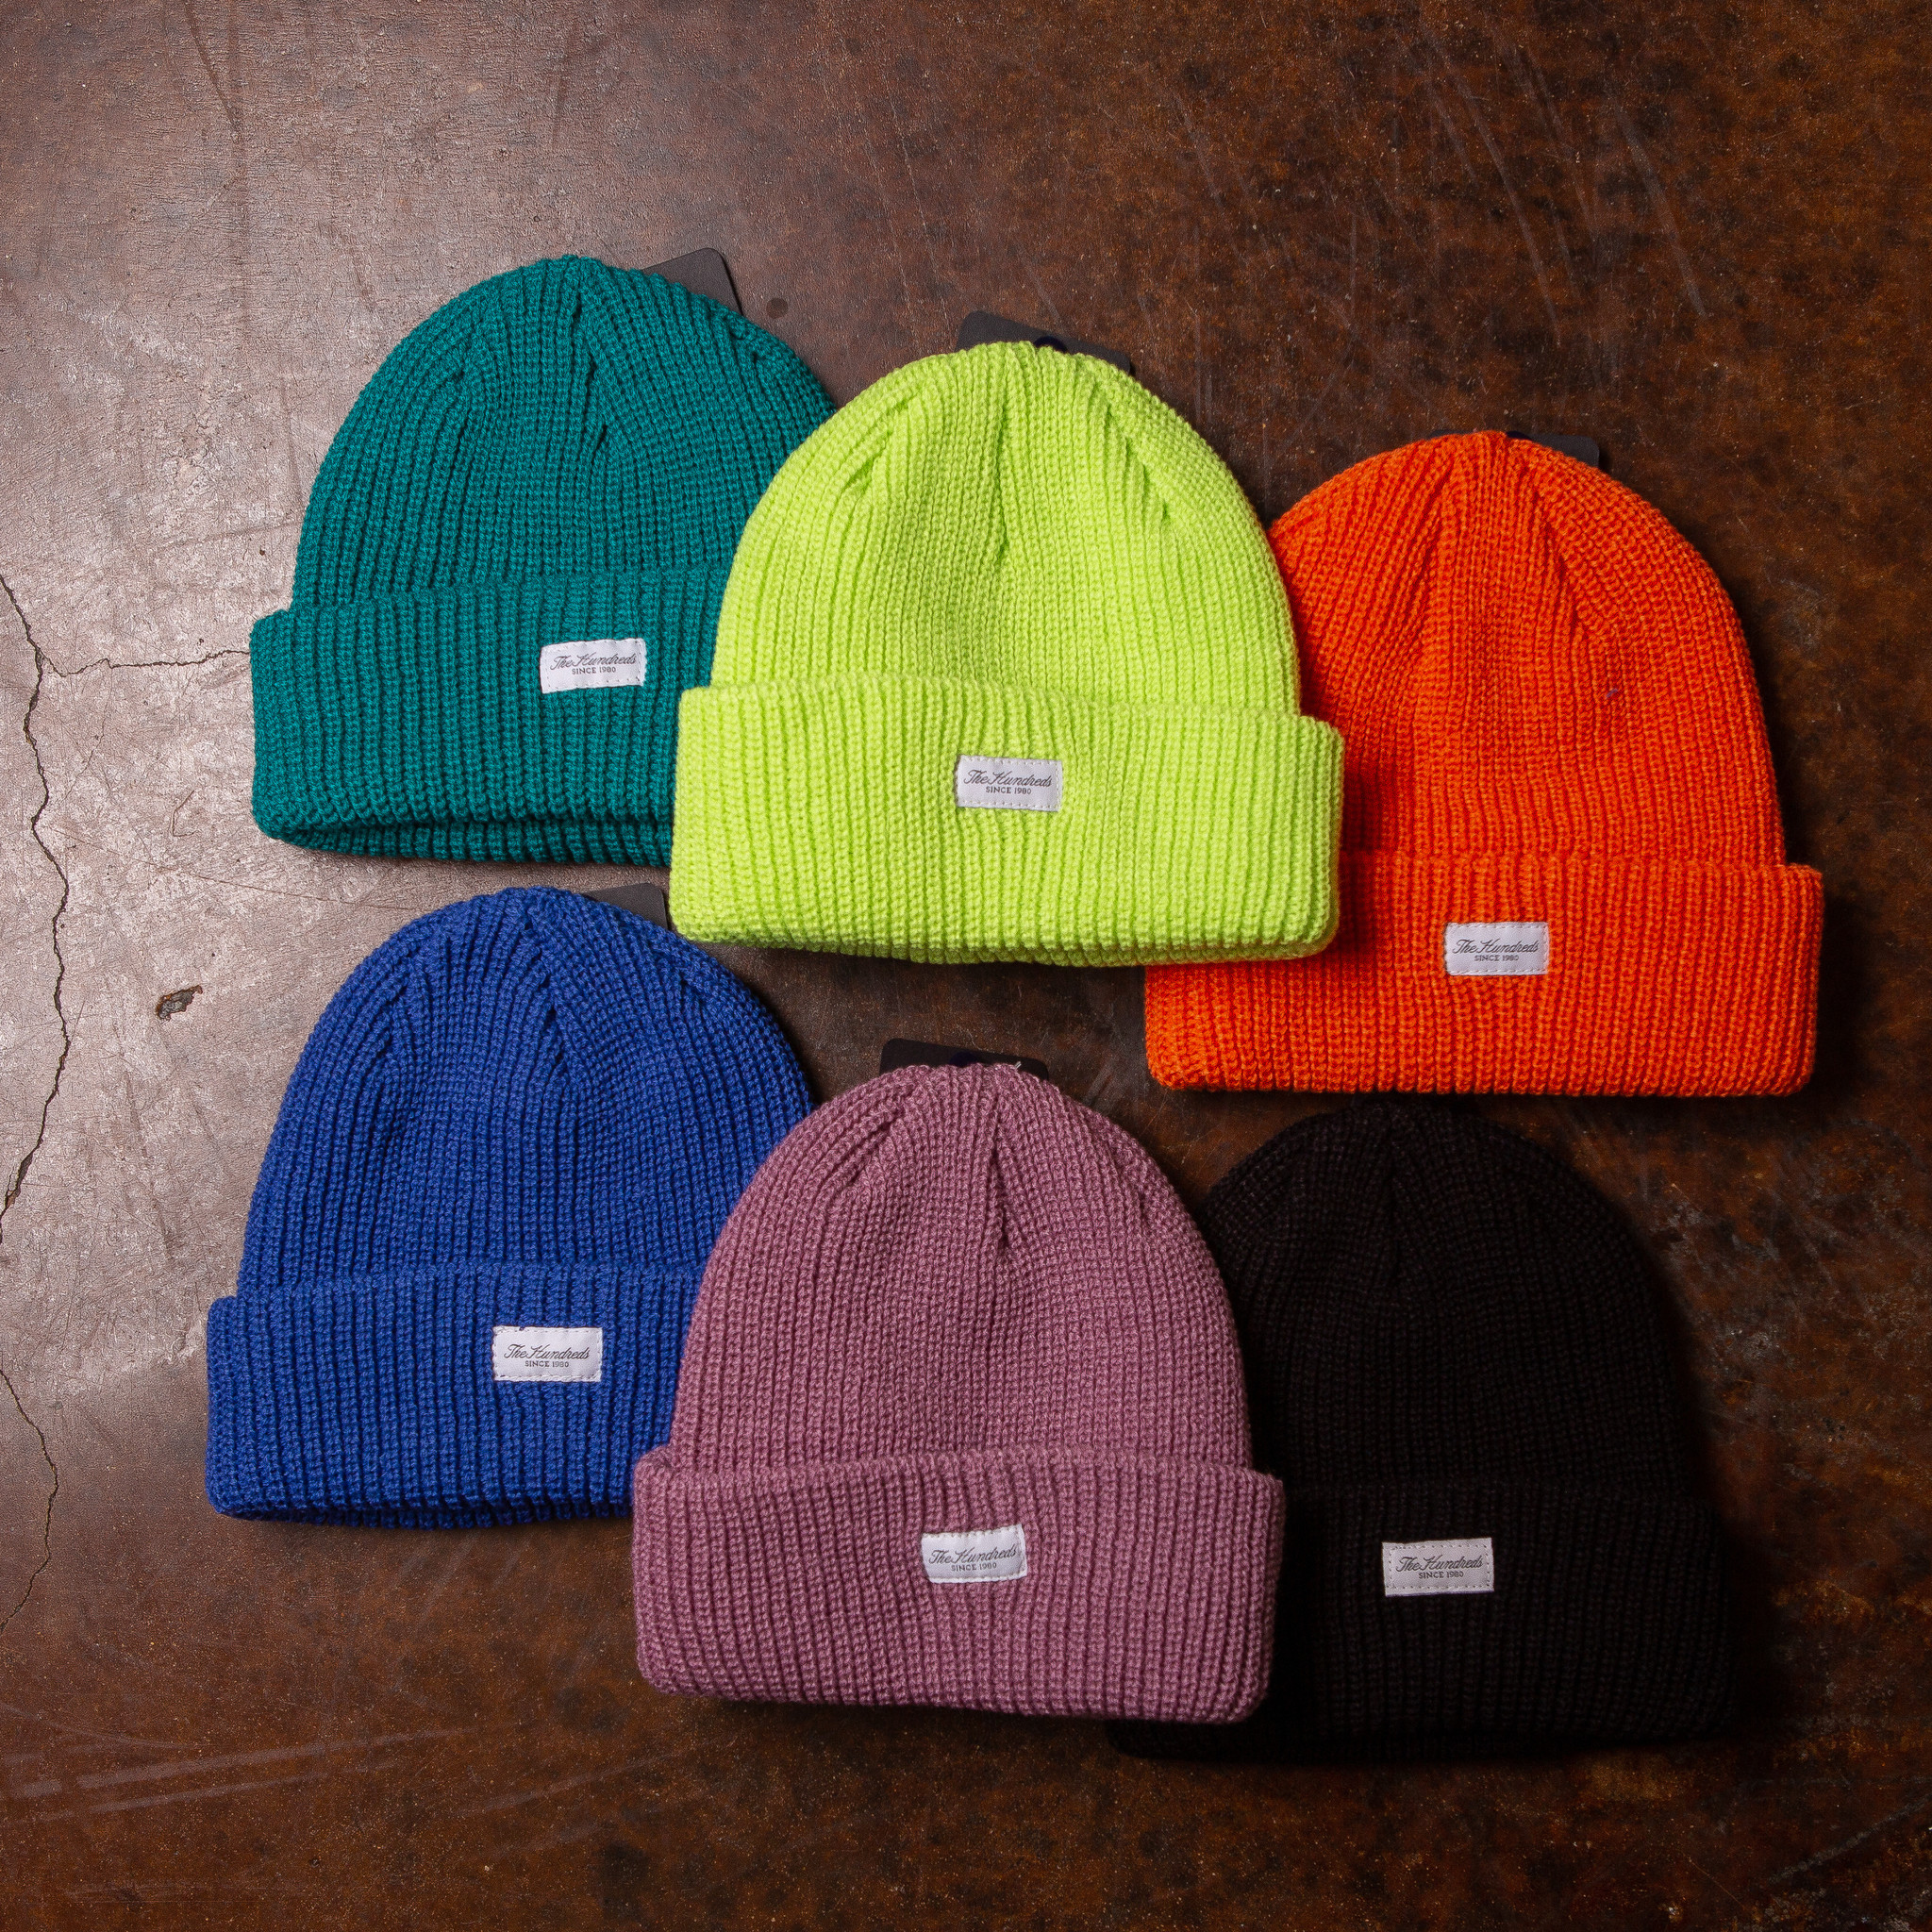 The Hundreds Crisp F20 Beanie